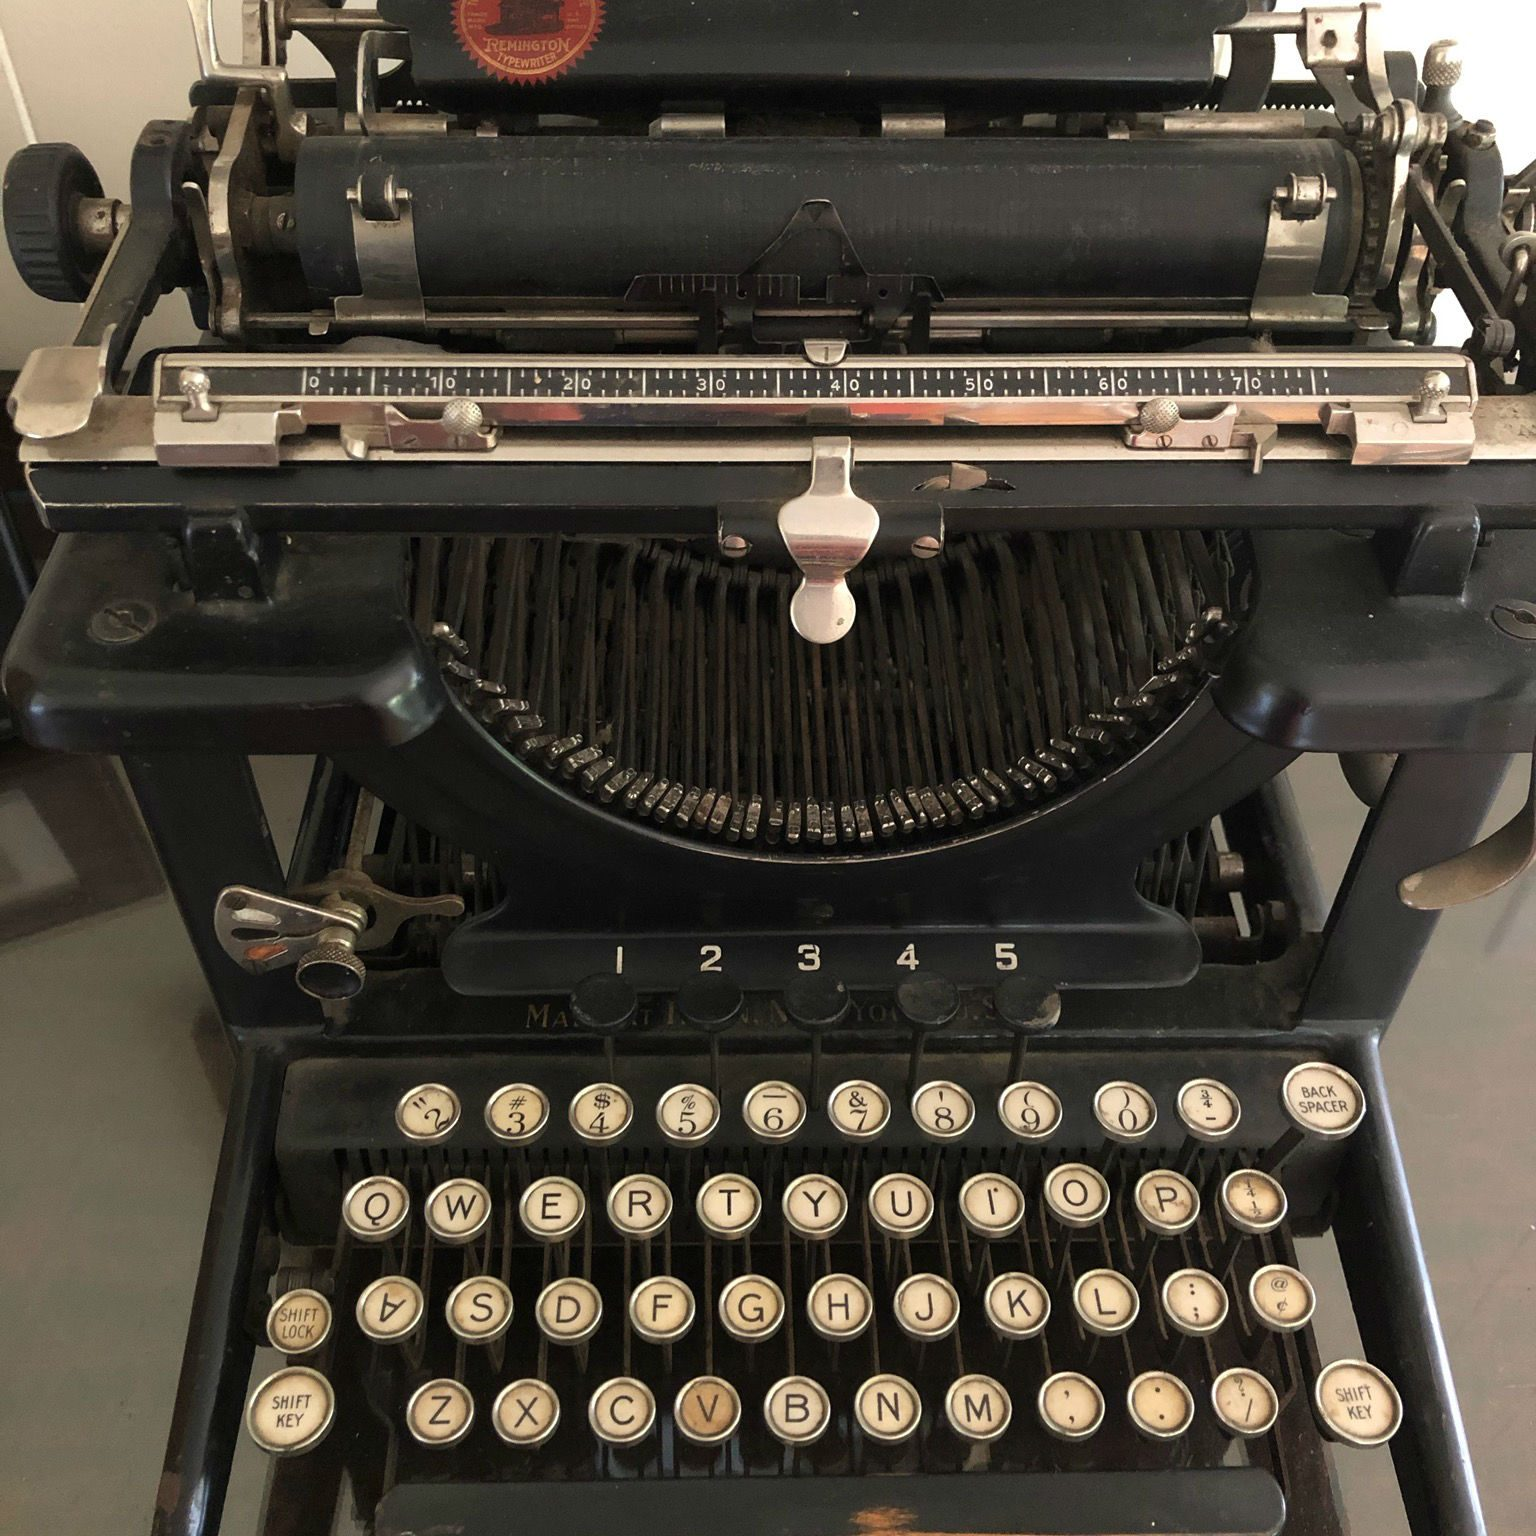 6275 Typewriter by Beth Luce